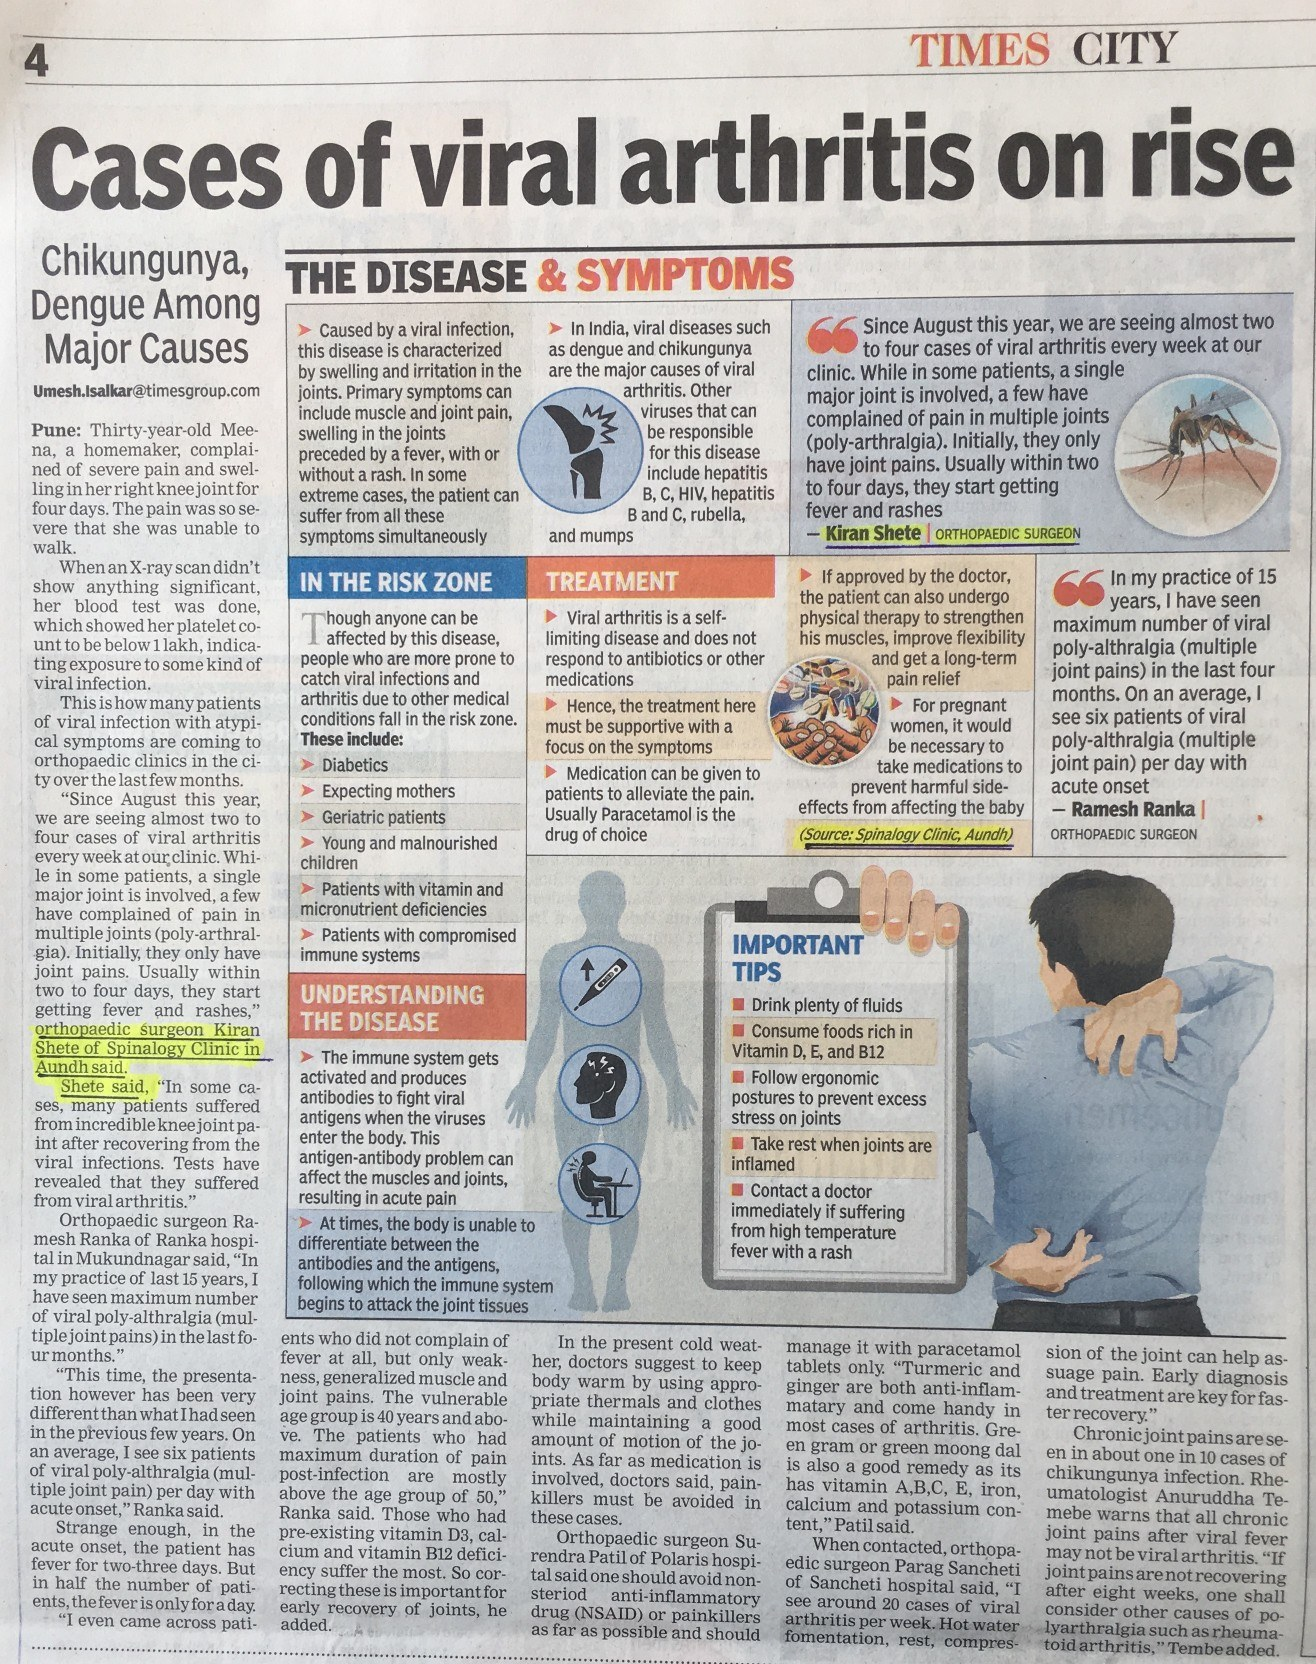 Case of Viral Arthritis on Rise